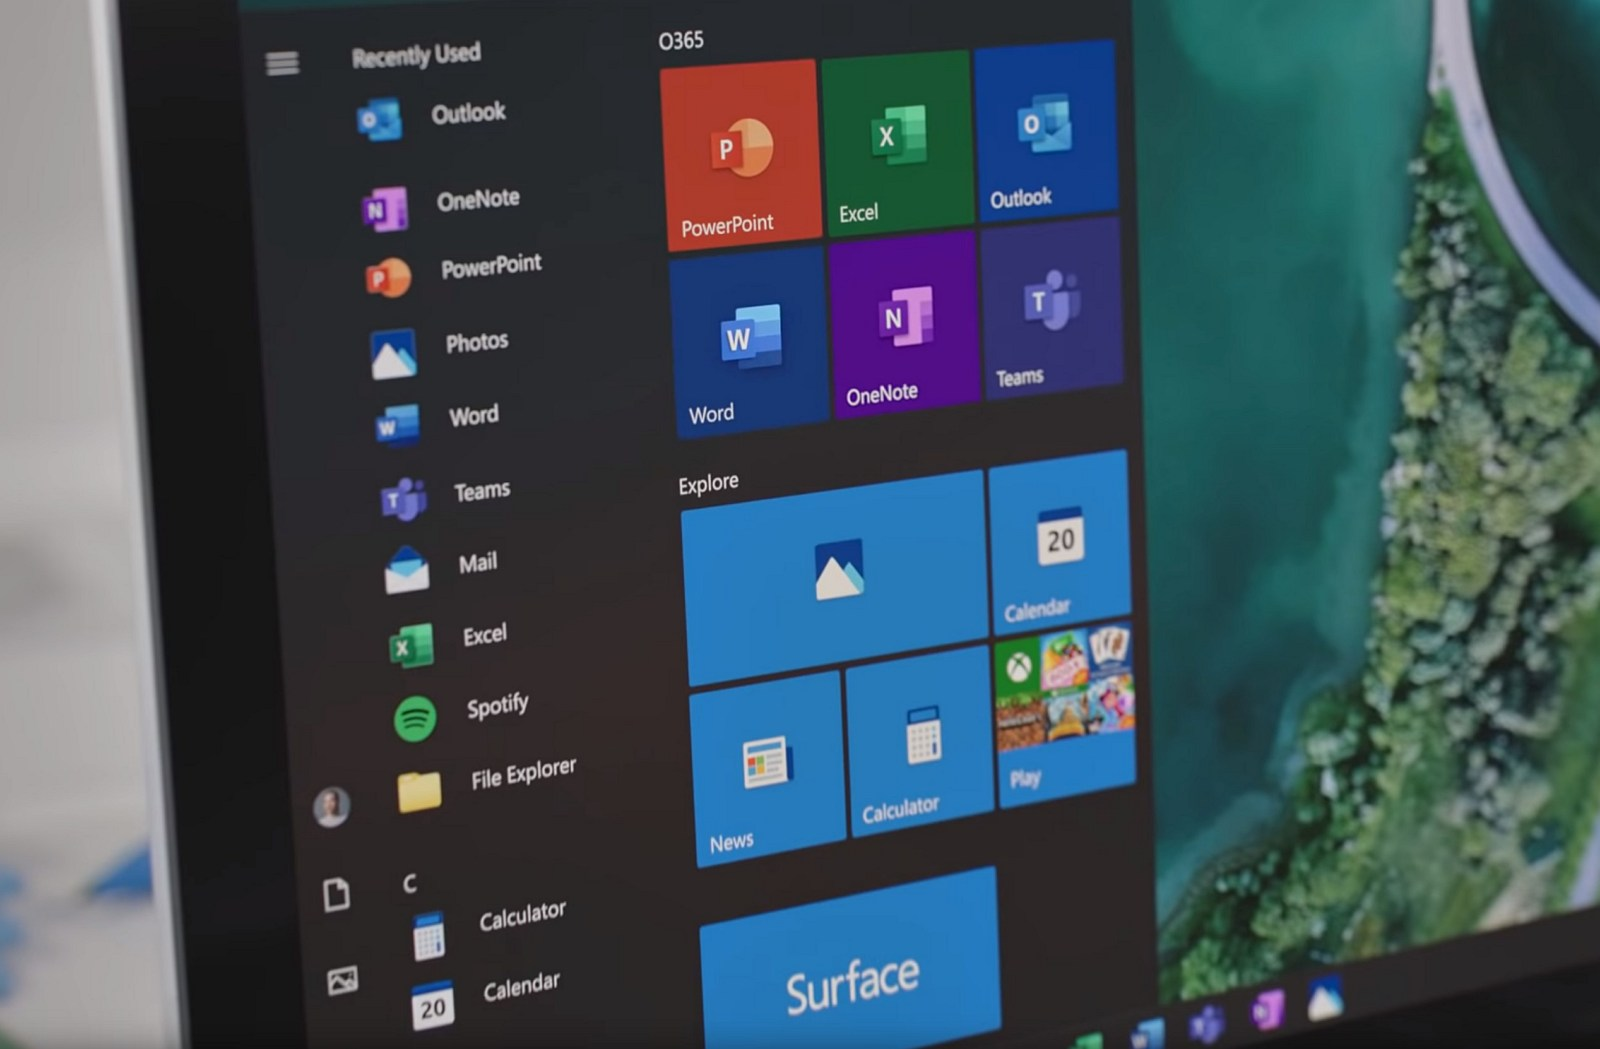 Windows 10 new icons for apps